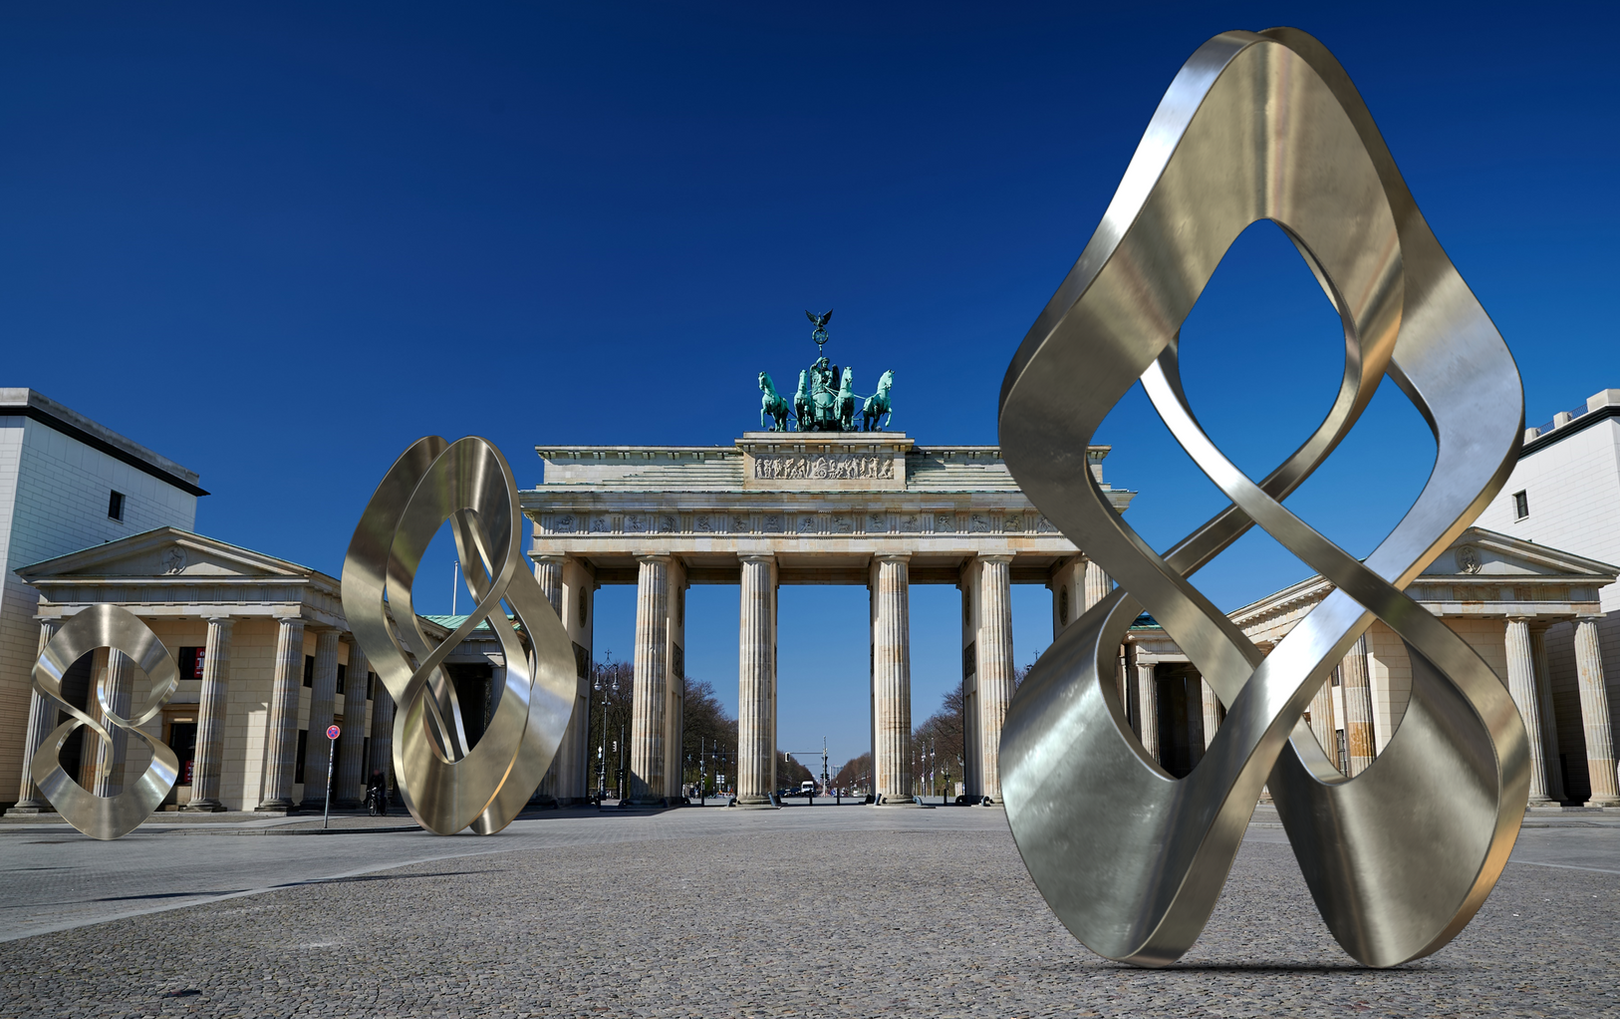 Berlin, Germany | The Brandenburg Gate